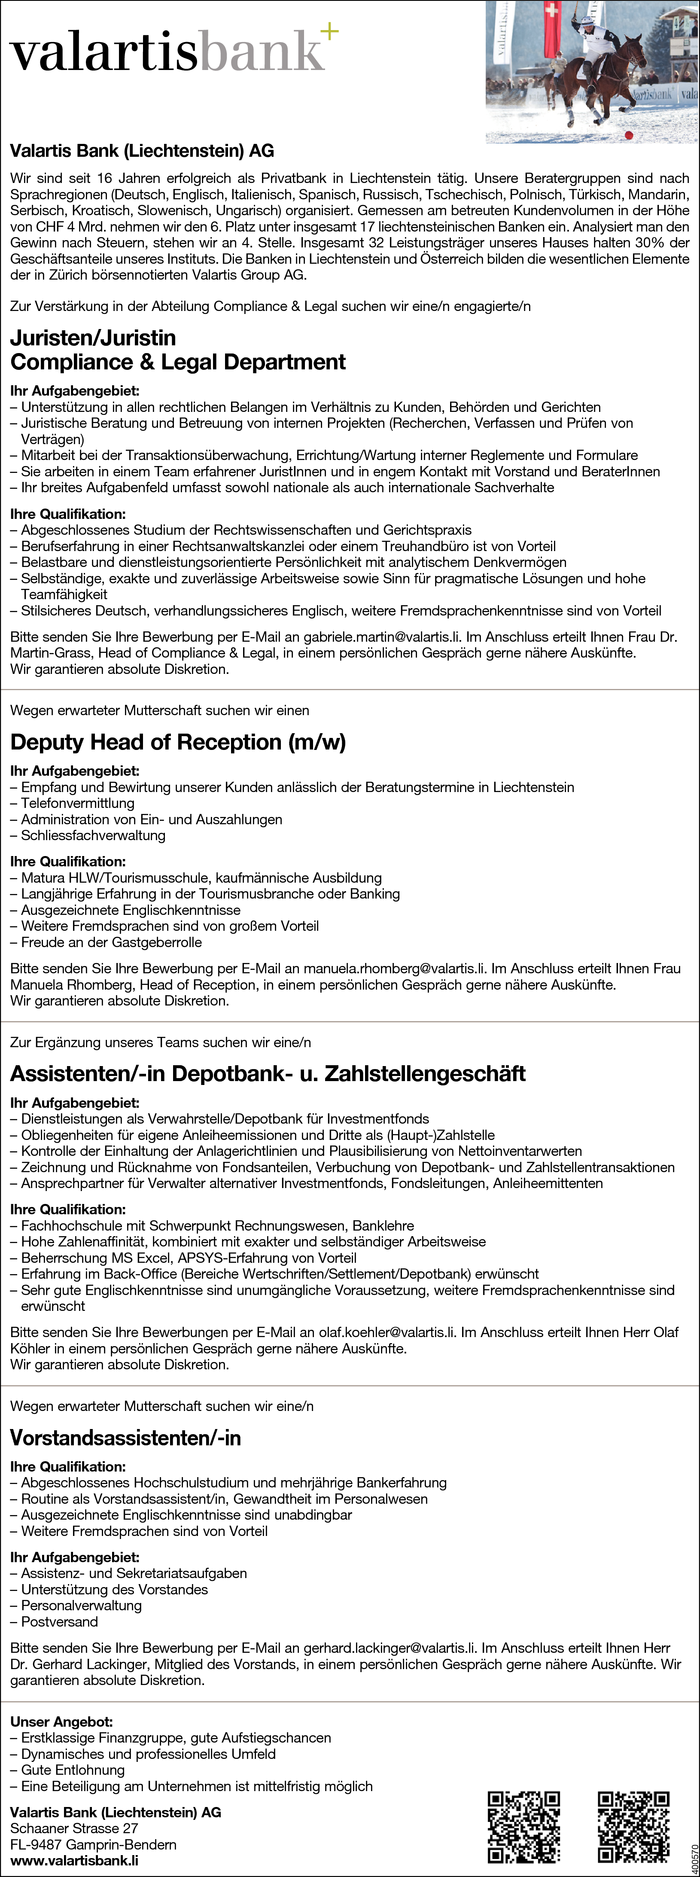 Jurist/in, Deputy Head of Reception, Assistenten/in, Vorstandsassistenten/in